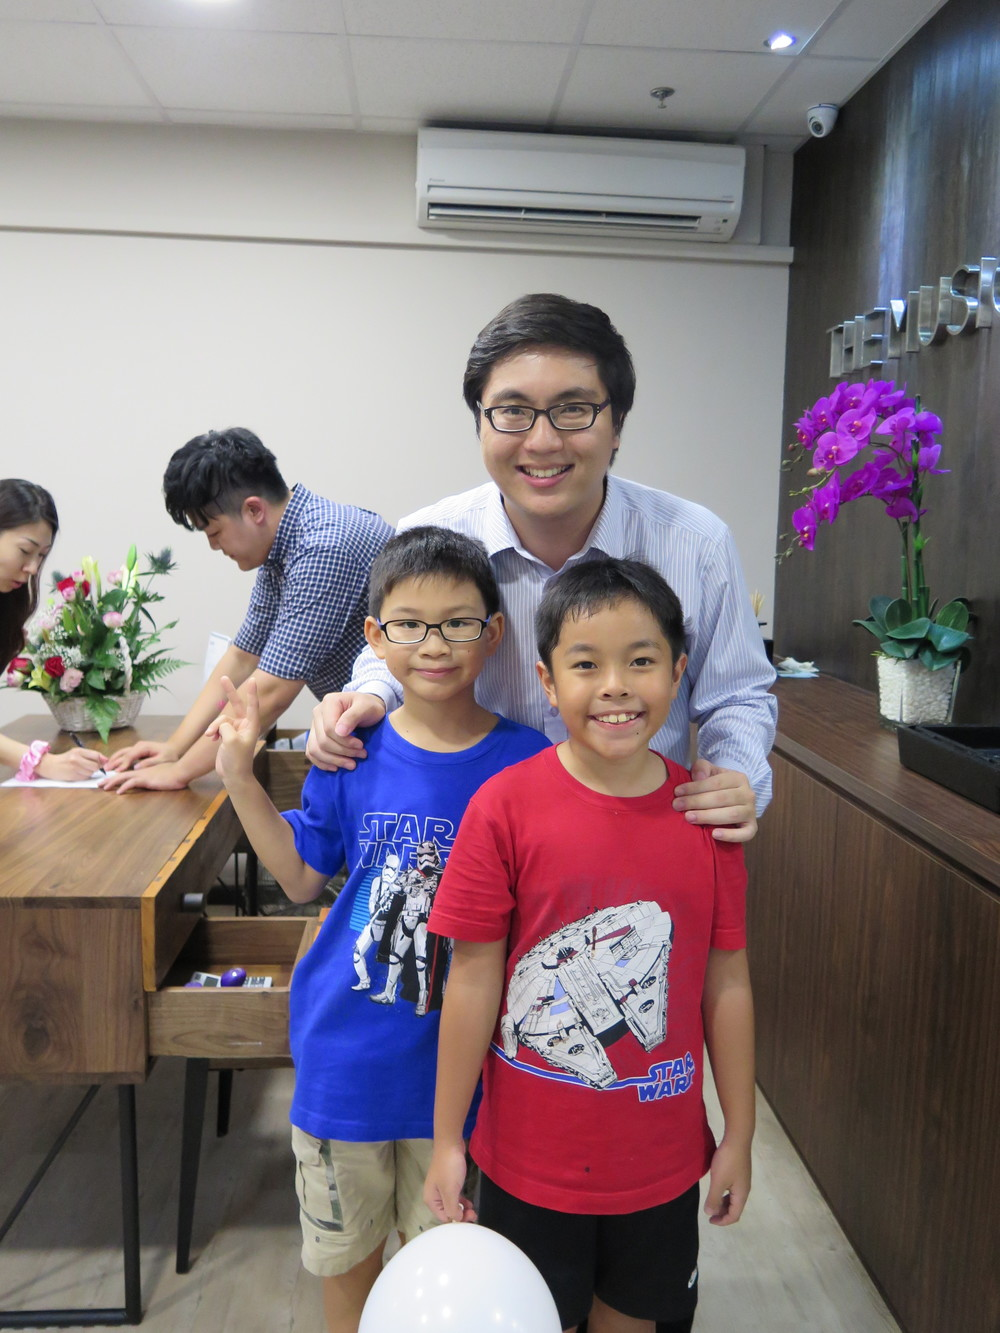 Teacher Wei Yang with his students Matthew and Samuel. Teacher Jeremiah pictured in the background busy as usual